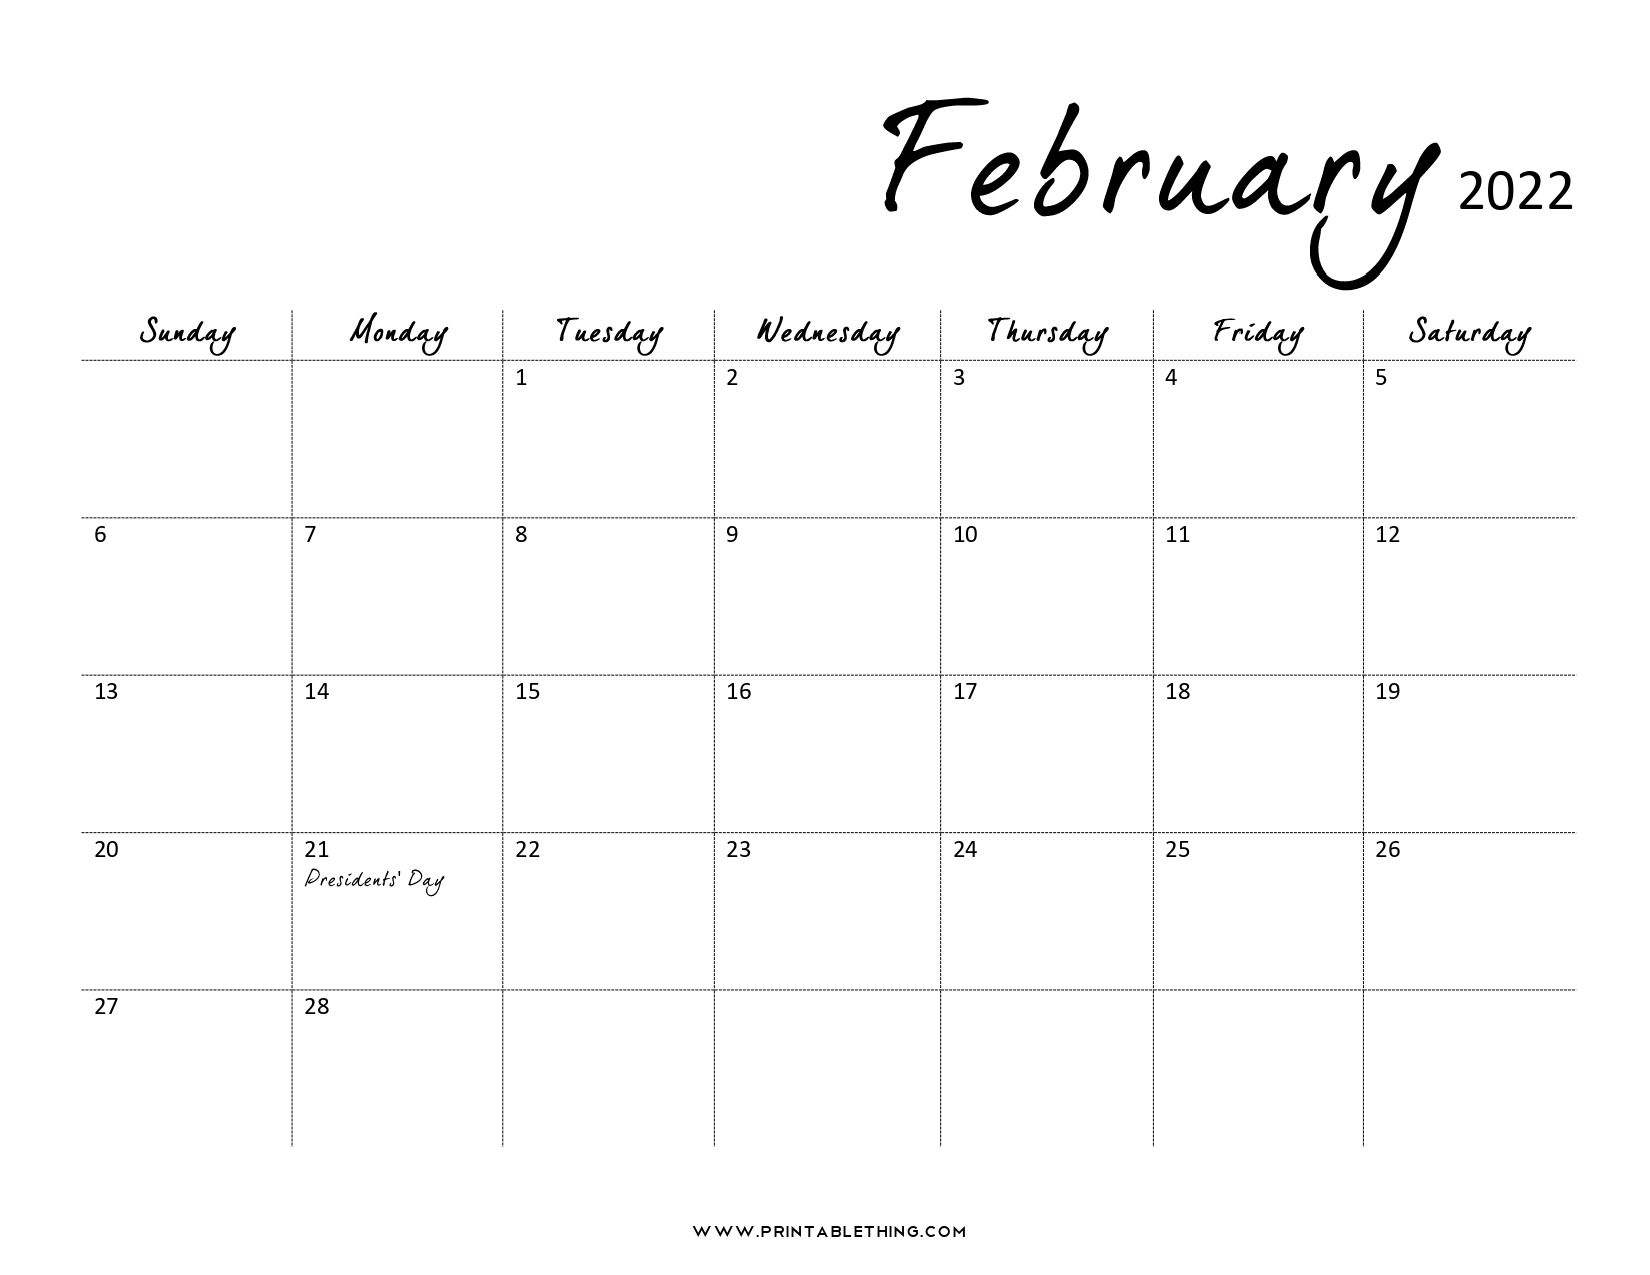 Remembering to pay your bills each month isn't always easy, especially when your bills are d. 20+ February 2022 Calendar | Printable, PDF, US Holidays ...